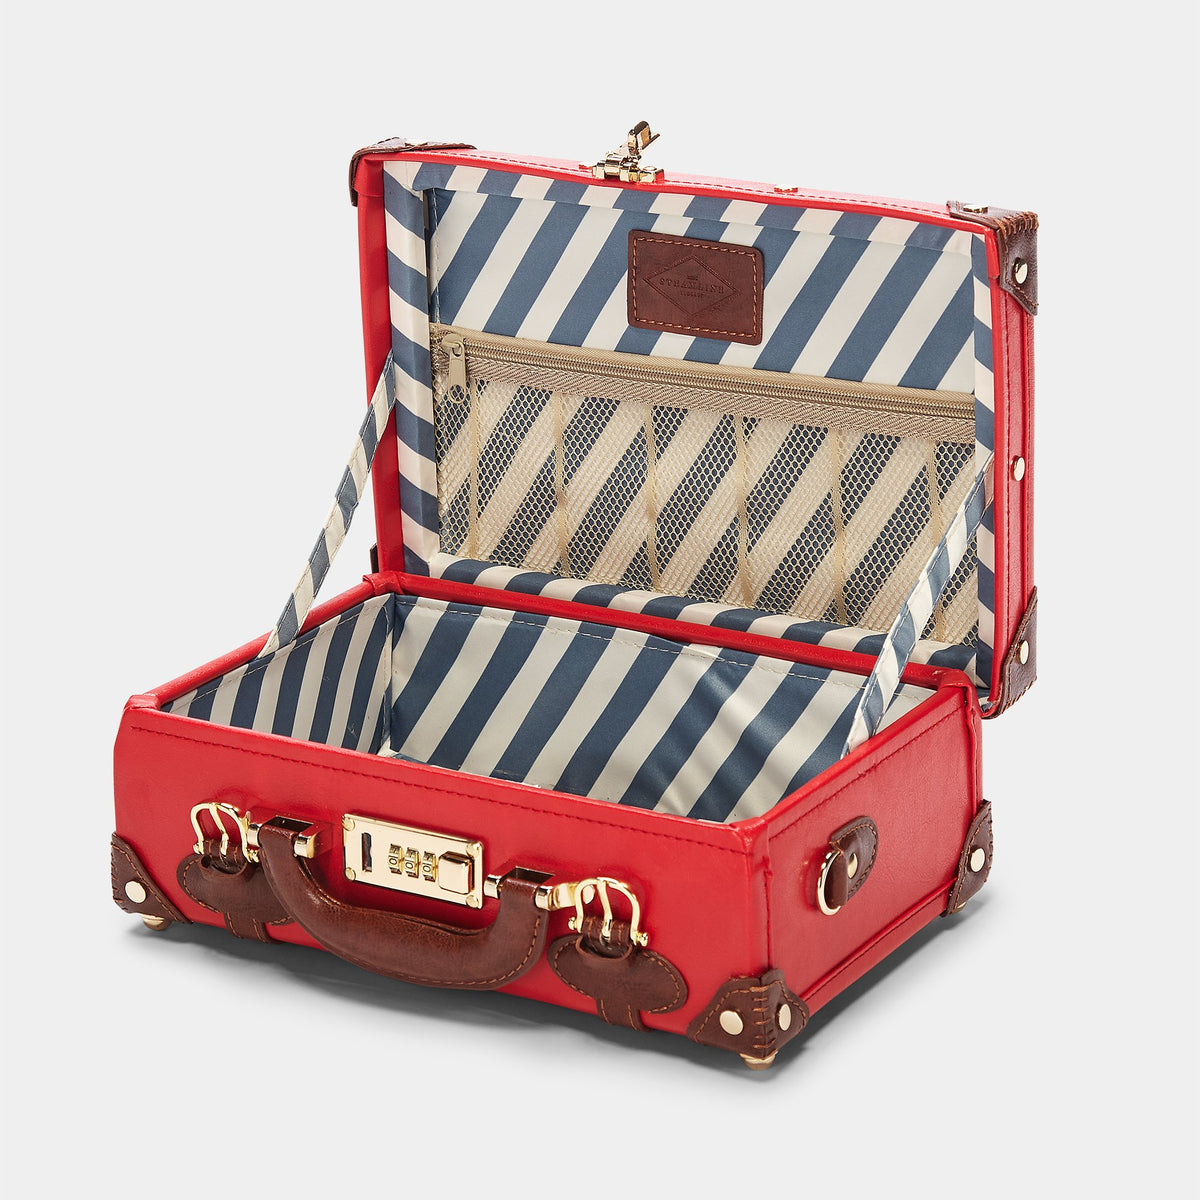 The Entrepreneur Vanity in Red - Vintage-Inspired Vegan Luggage - Interior Front